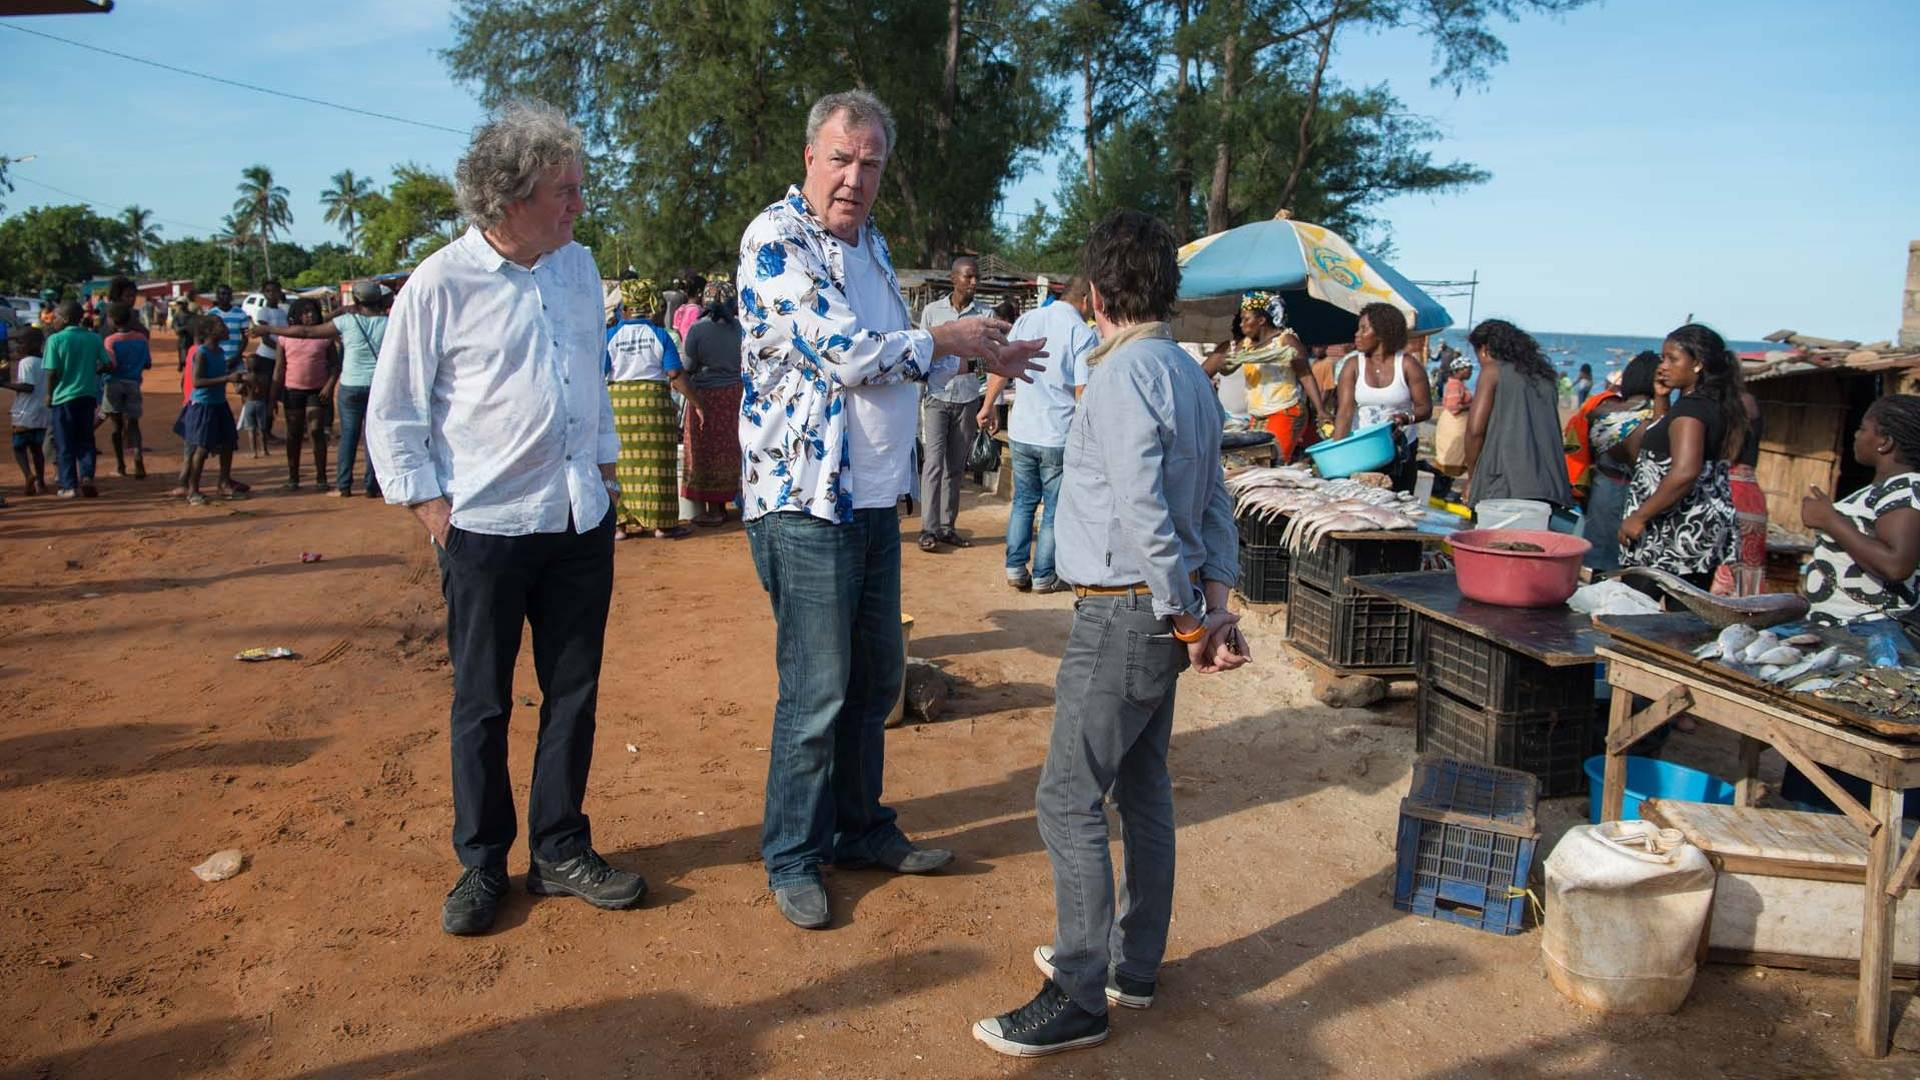 The_Grand_Tour_Mozambique_Special_0028